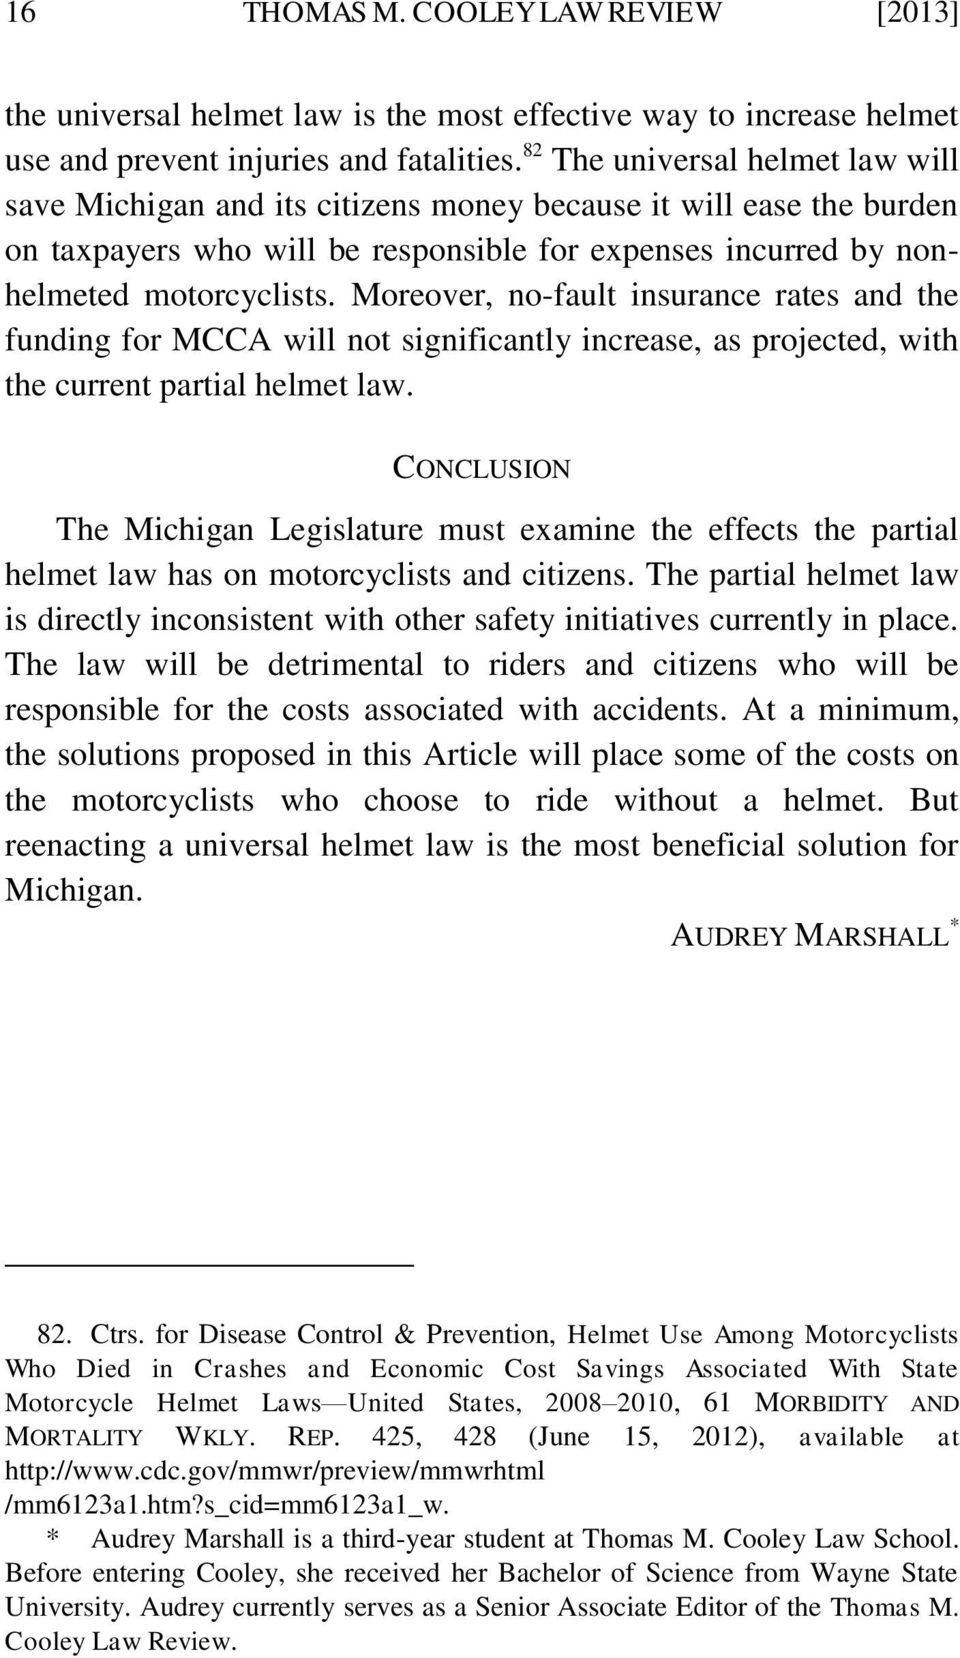 Moreover, no-fault insurance rates and the funding for MCCA will not significantly increase, as projected, with the current partial helmet law.